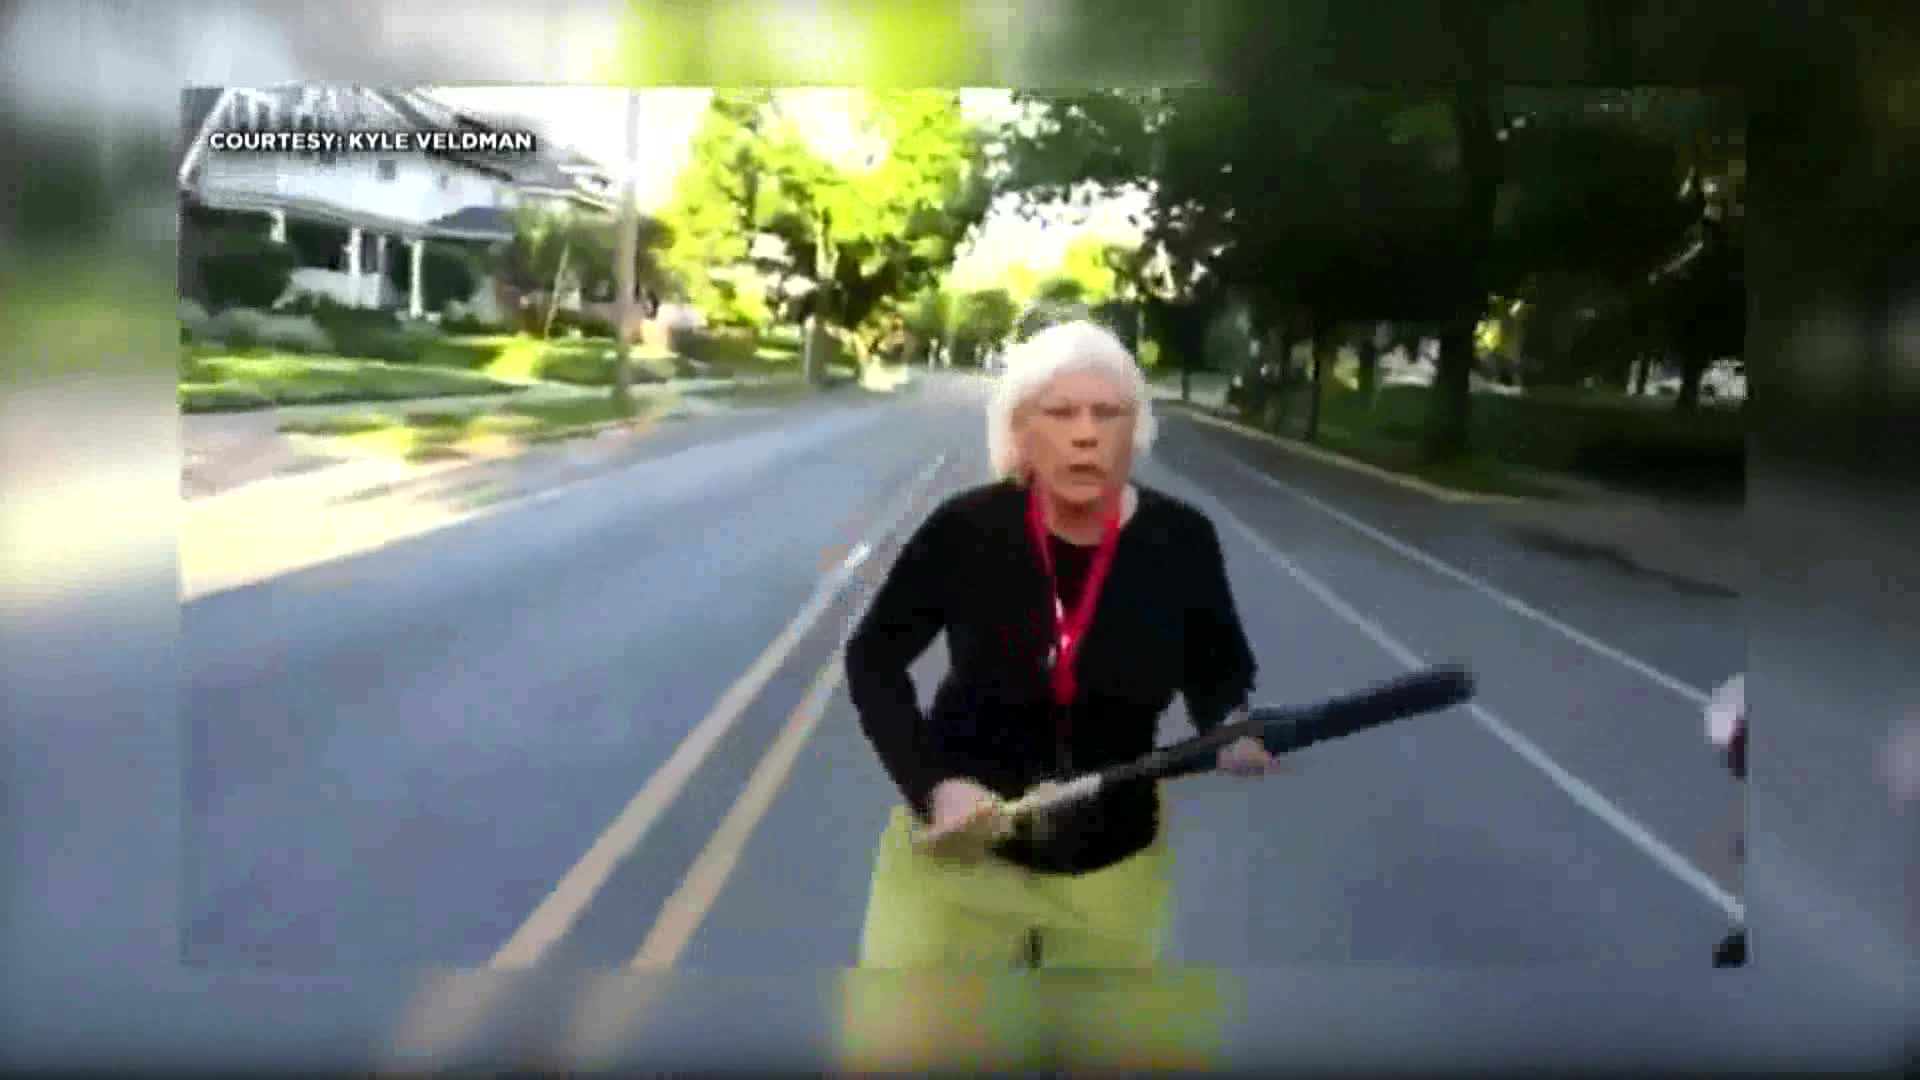 Grandmother wielding baseball bat confronts protesters marching through neighborhood